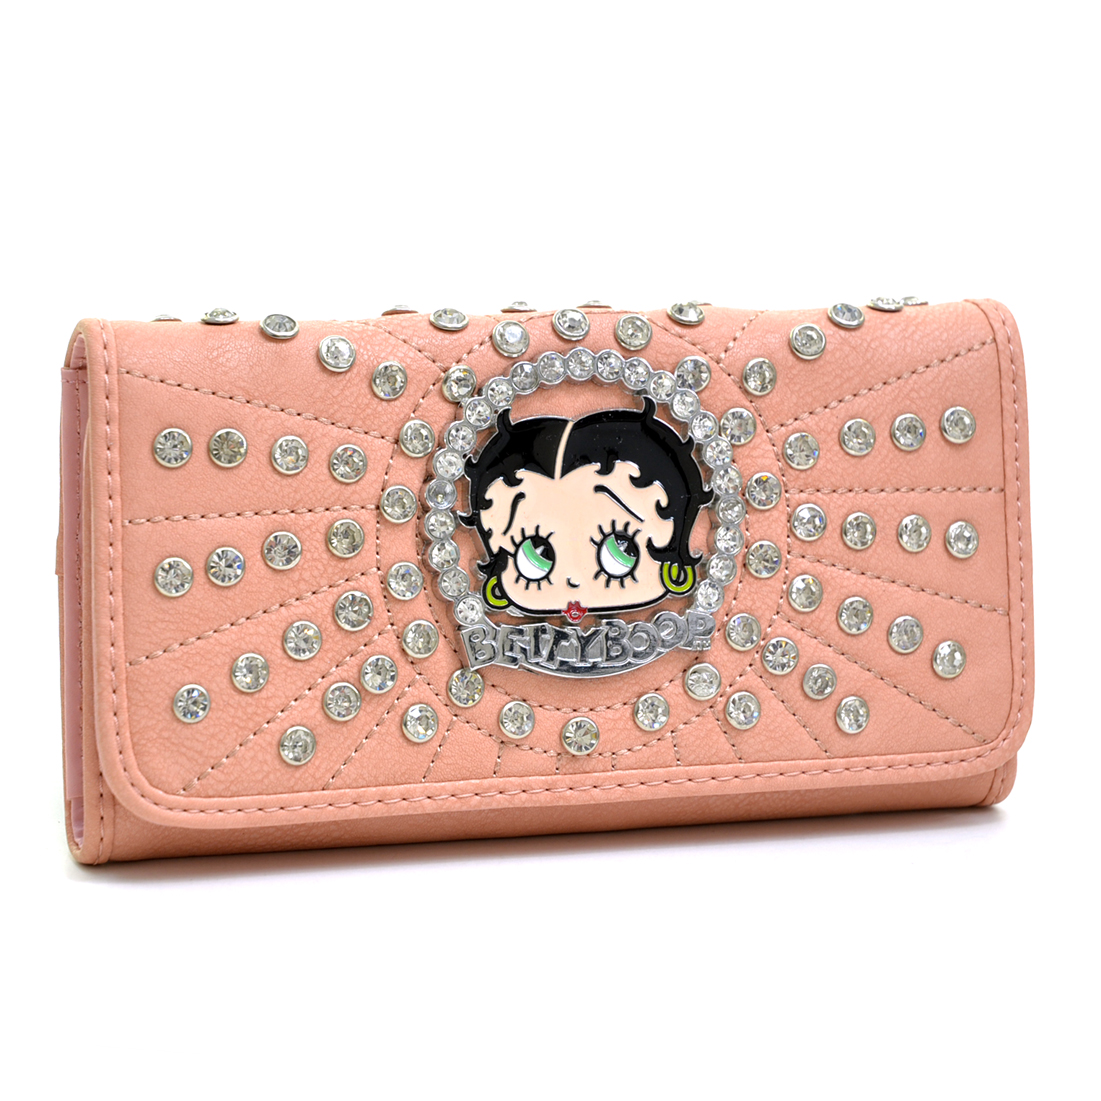 Betty Boop® Rhinestone Decor Checkbook Wallet with Stitches